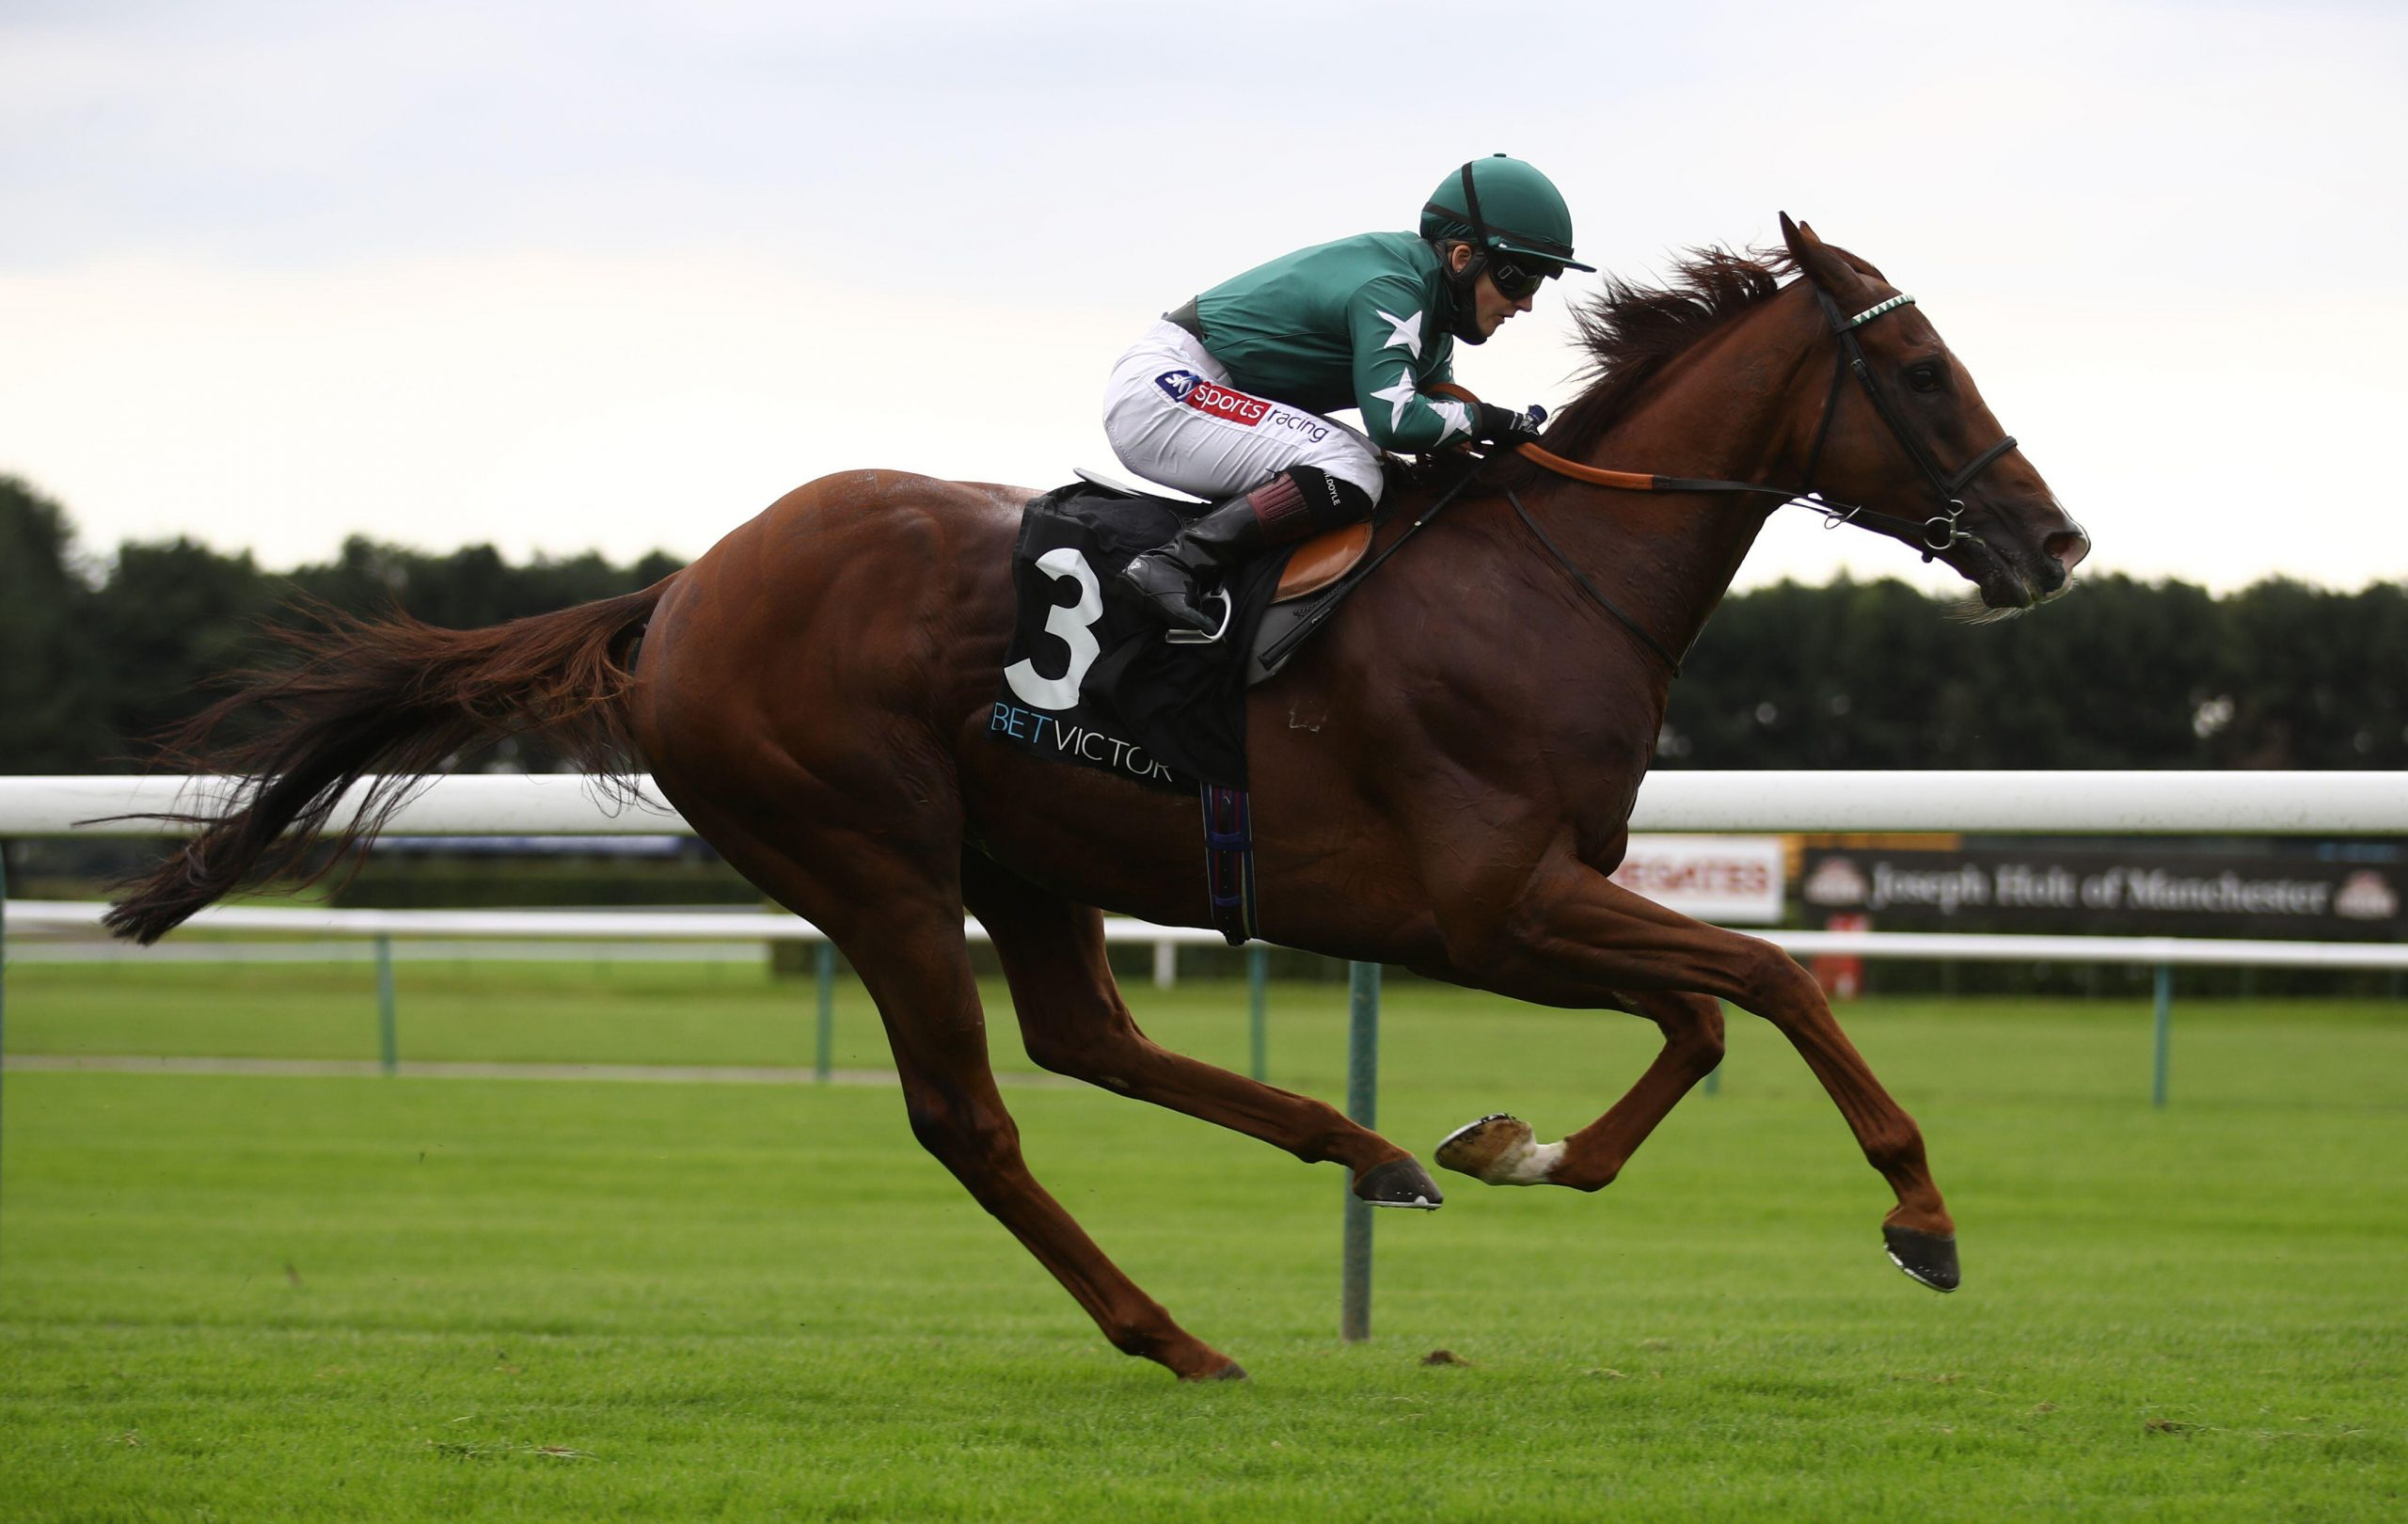 2CAPYM2 Extra Elusive ridden by Hollie Doyle wins The BetVictor Rose Of Lancaster Stakes at Haydock Park Racecourse, Haydock.